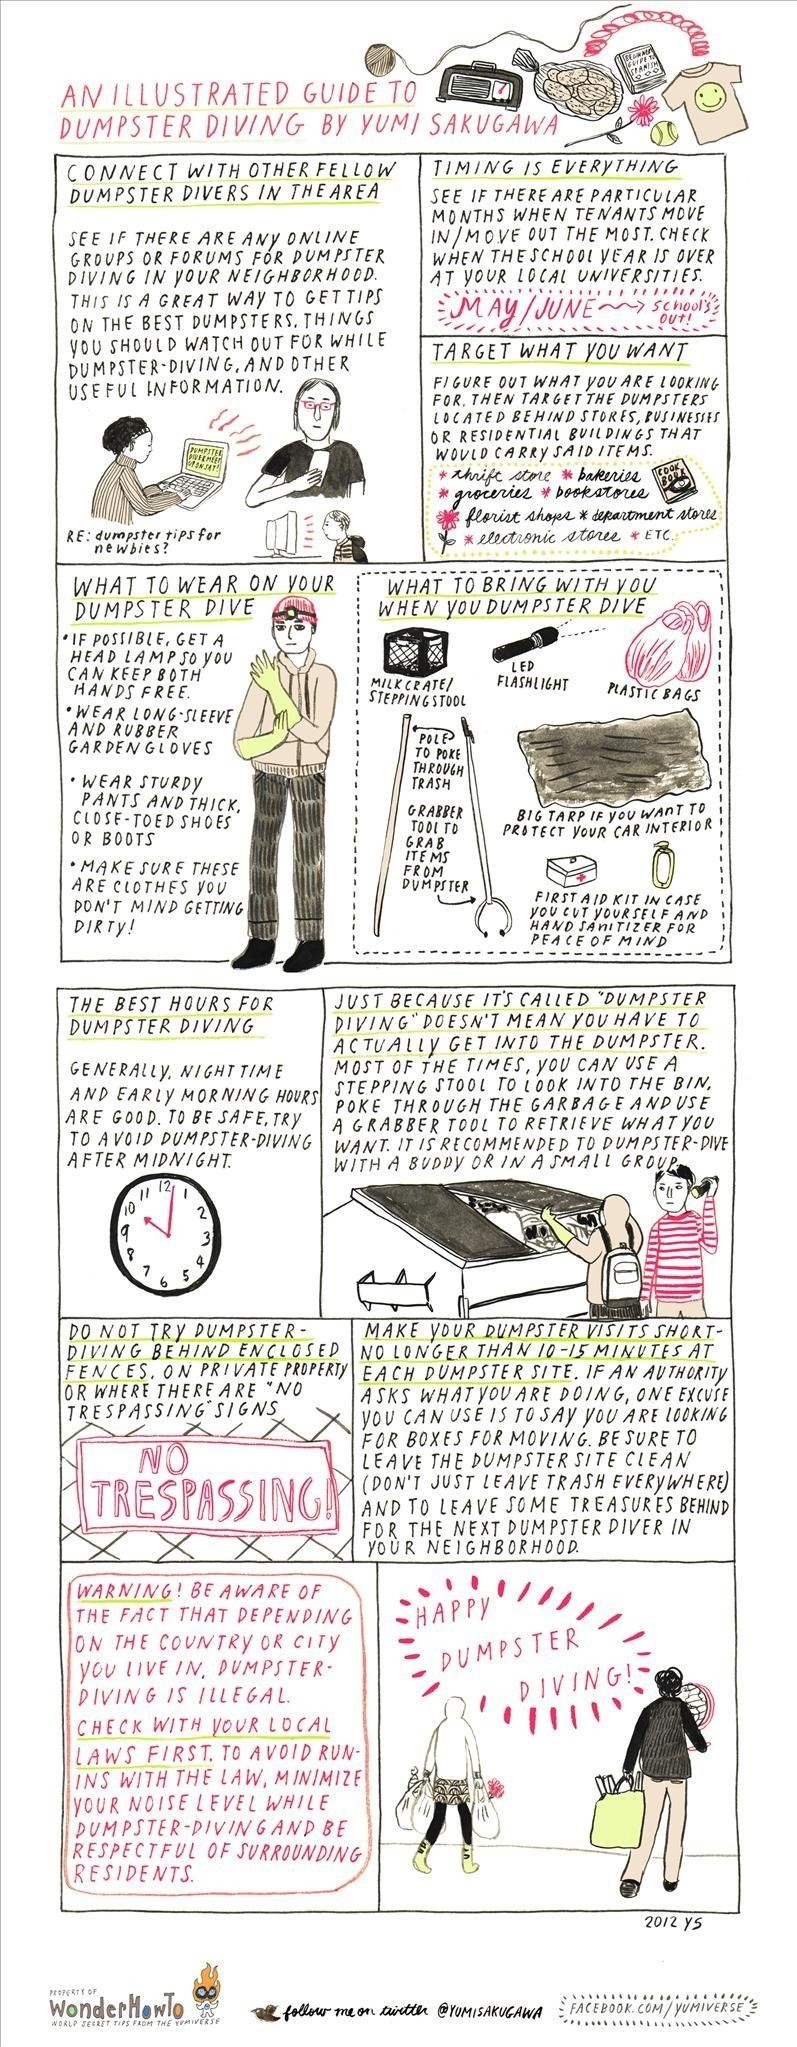 Trash Treasure Hunt: An Illustrated Guide to Dumpster Diving for Newbies